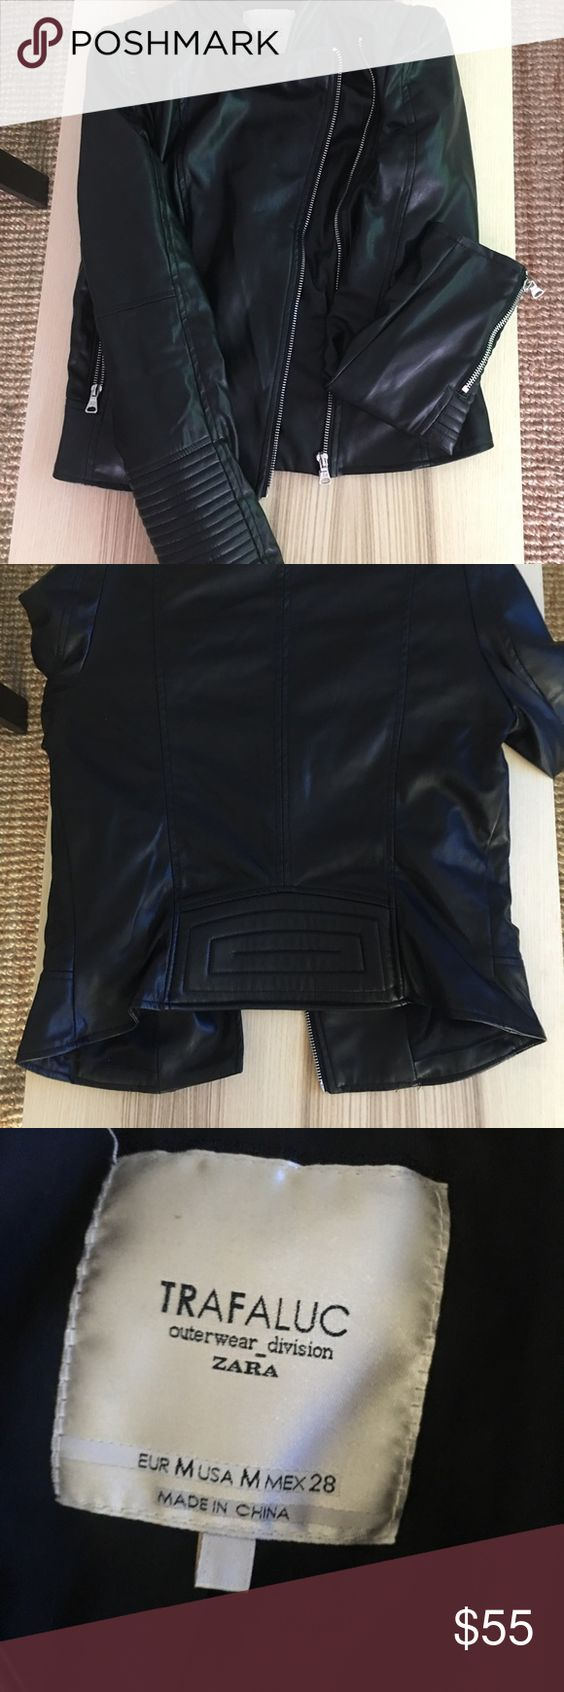 Zara vegan leather jacket Black vegan leather with silver hardware. Great jacket, very versatile. Zara Jackets & Coats